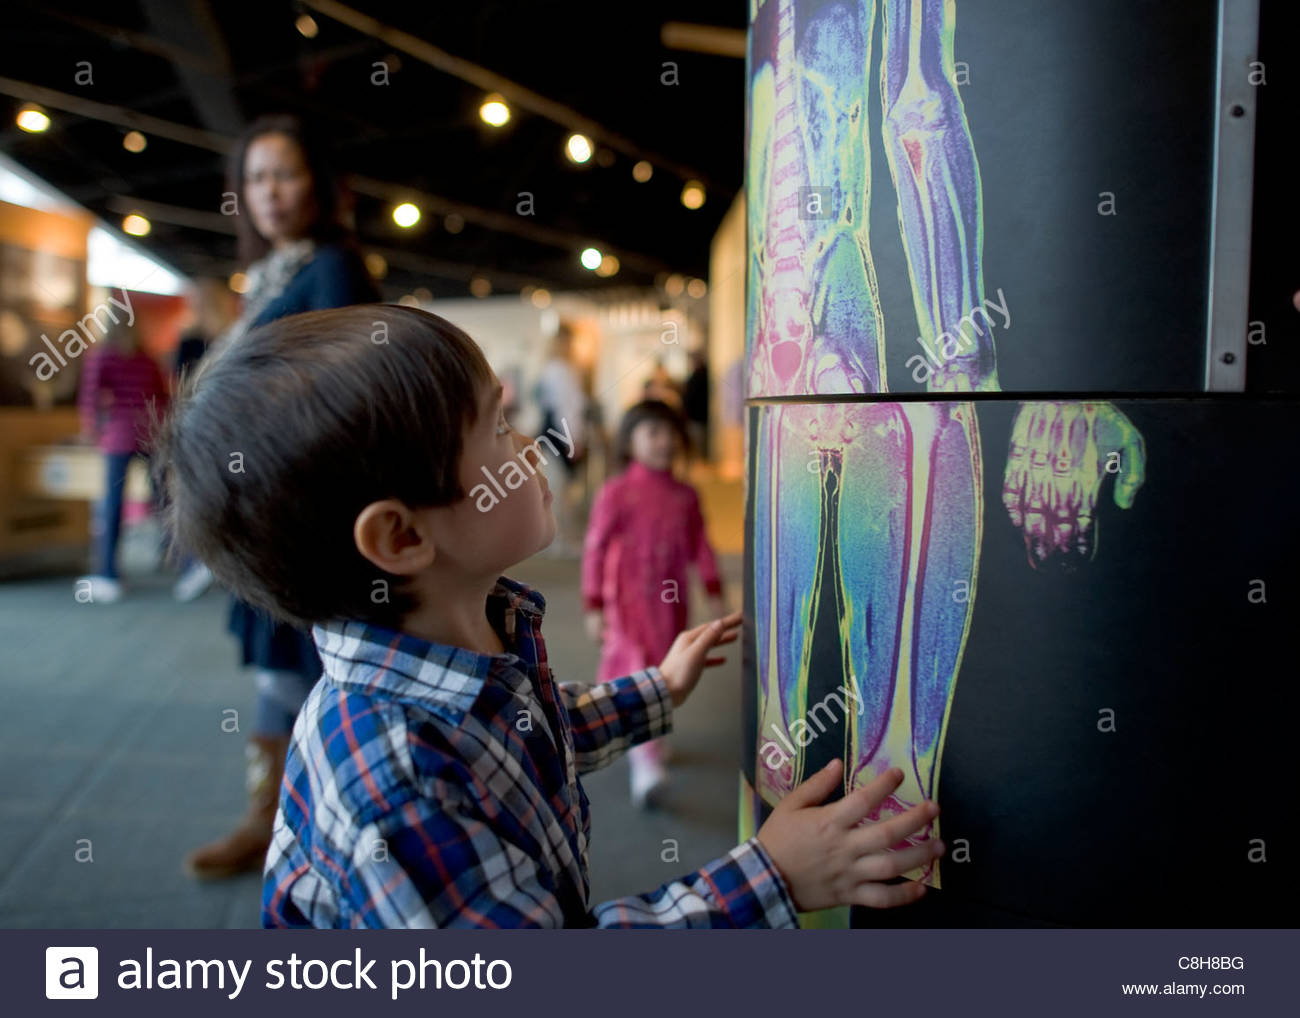 A young boy rotates a medical exhibit at a museum. - Stock Image